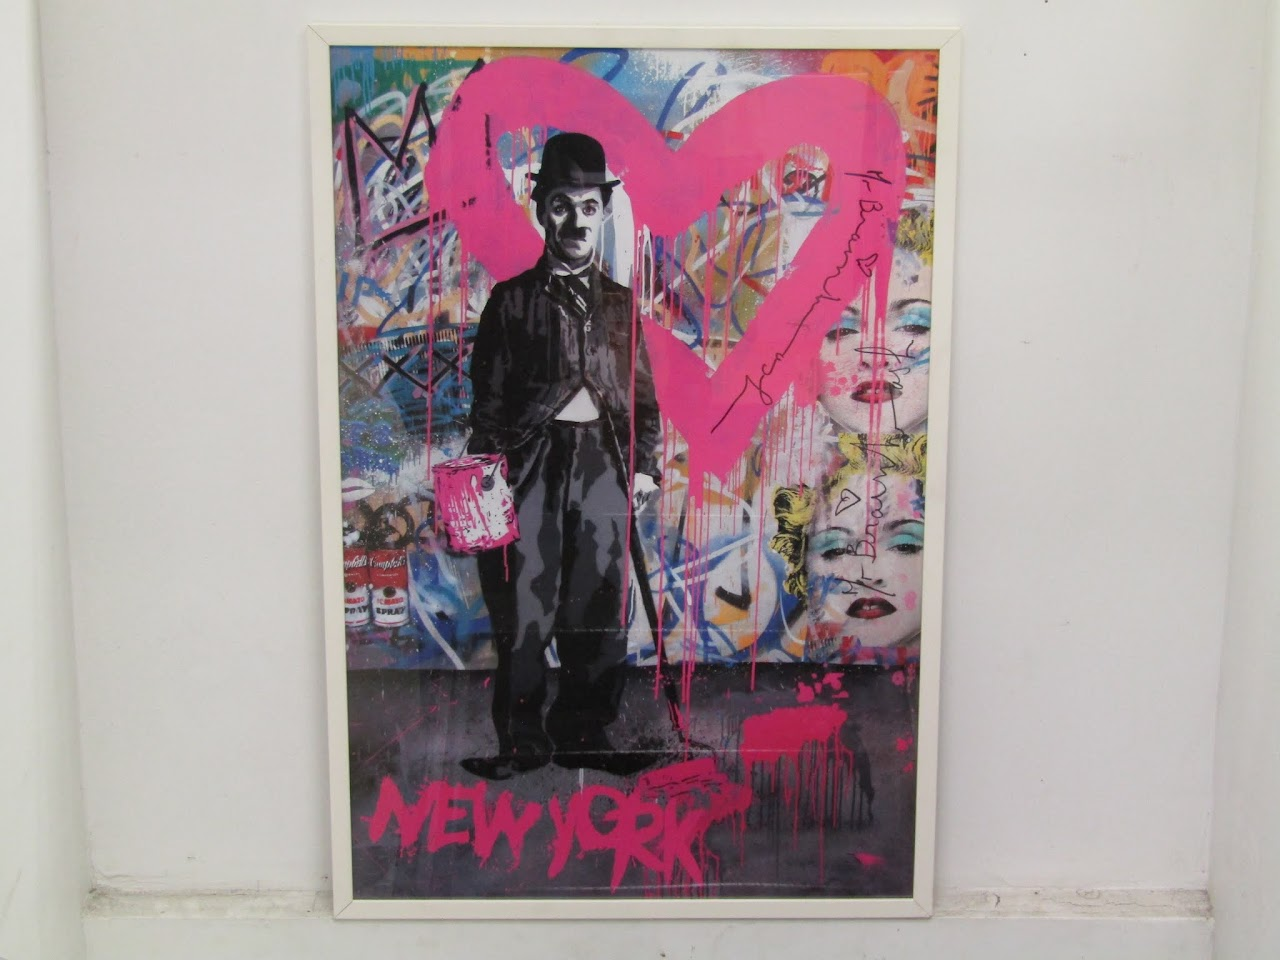 Signed Mr. Brainwash's Charlie Chaplin Poster